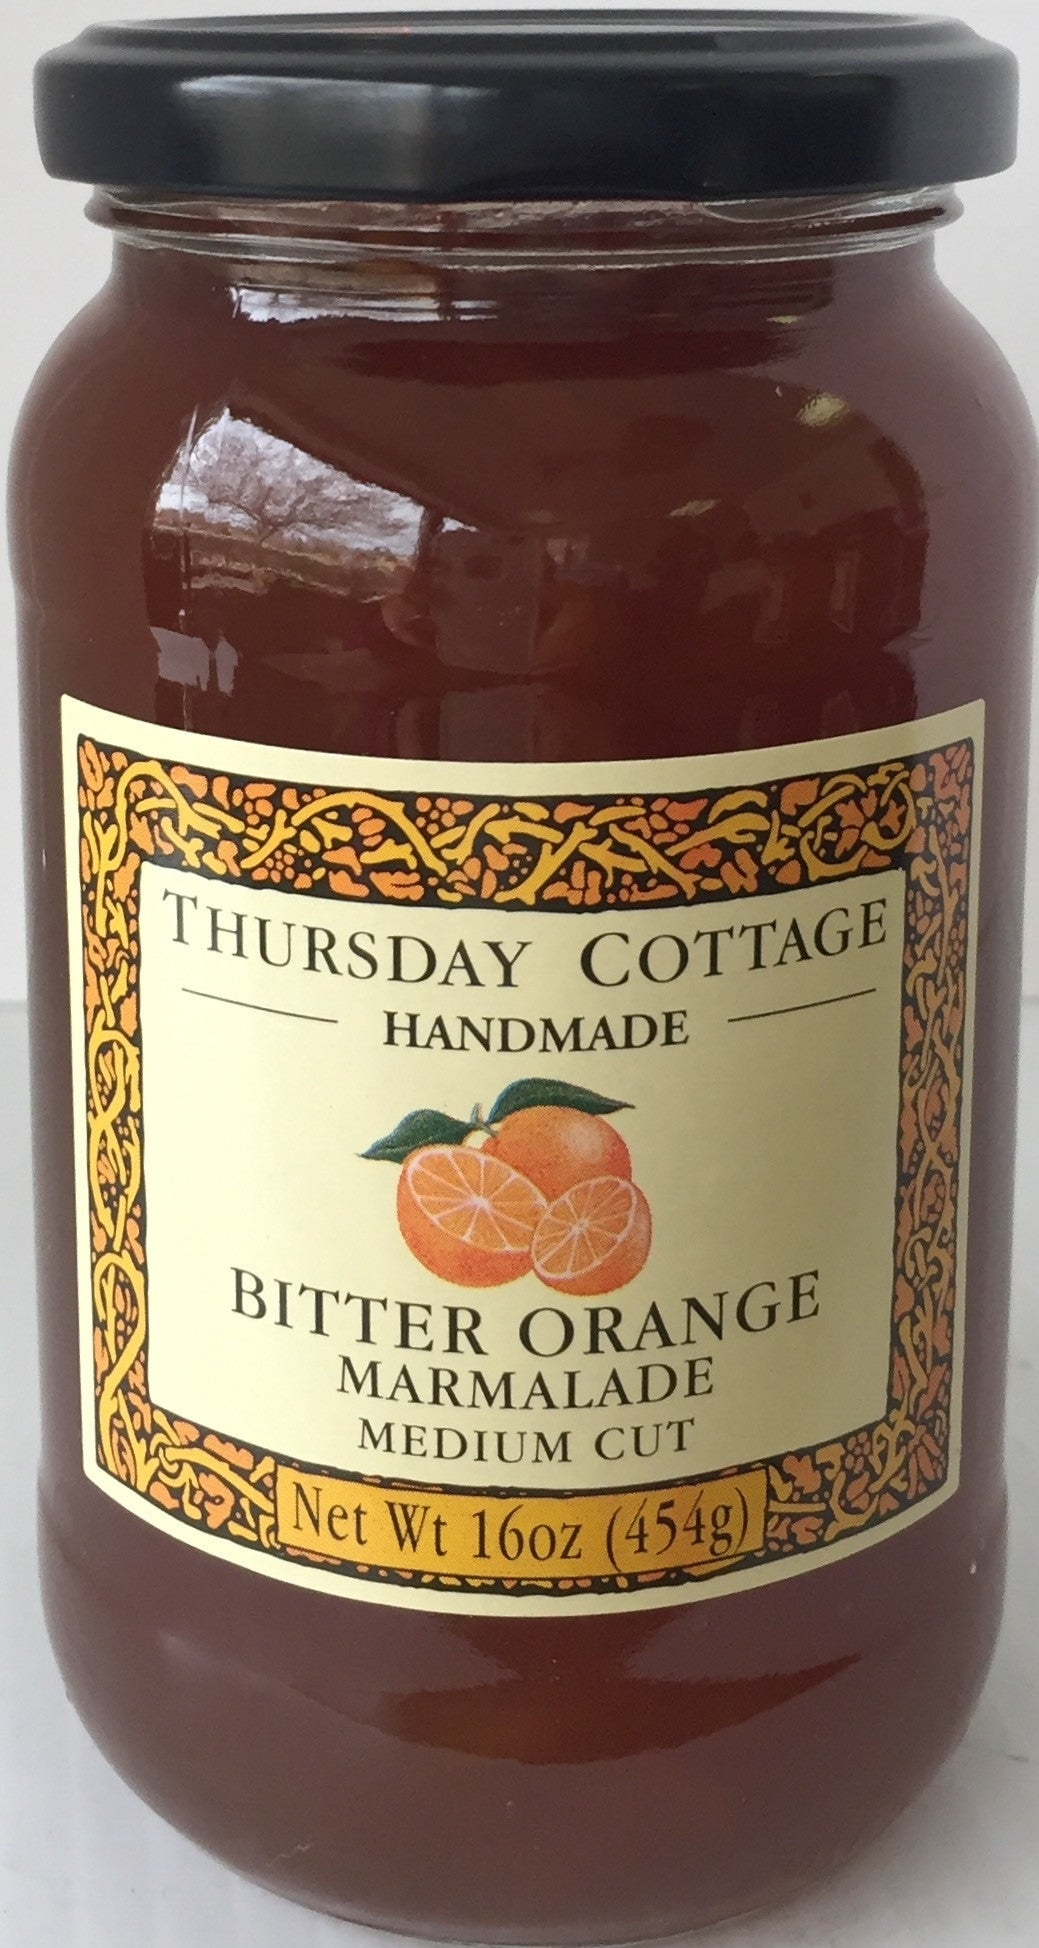 Thursday Cottage Bitter Orange Marmalade 454g